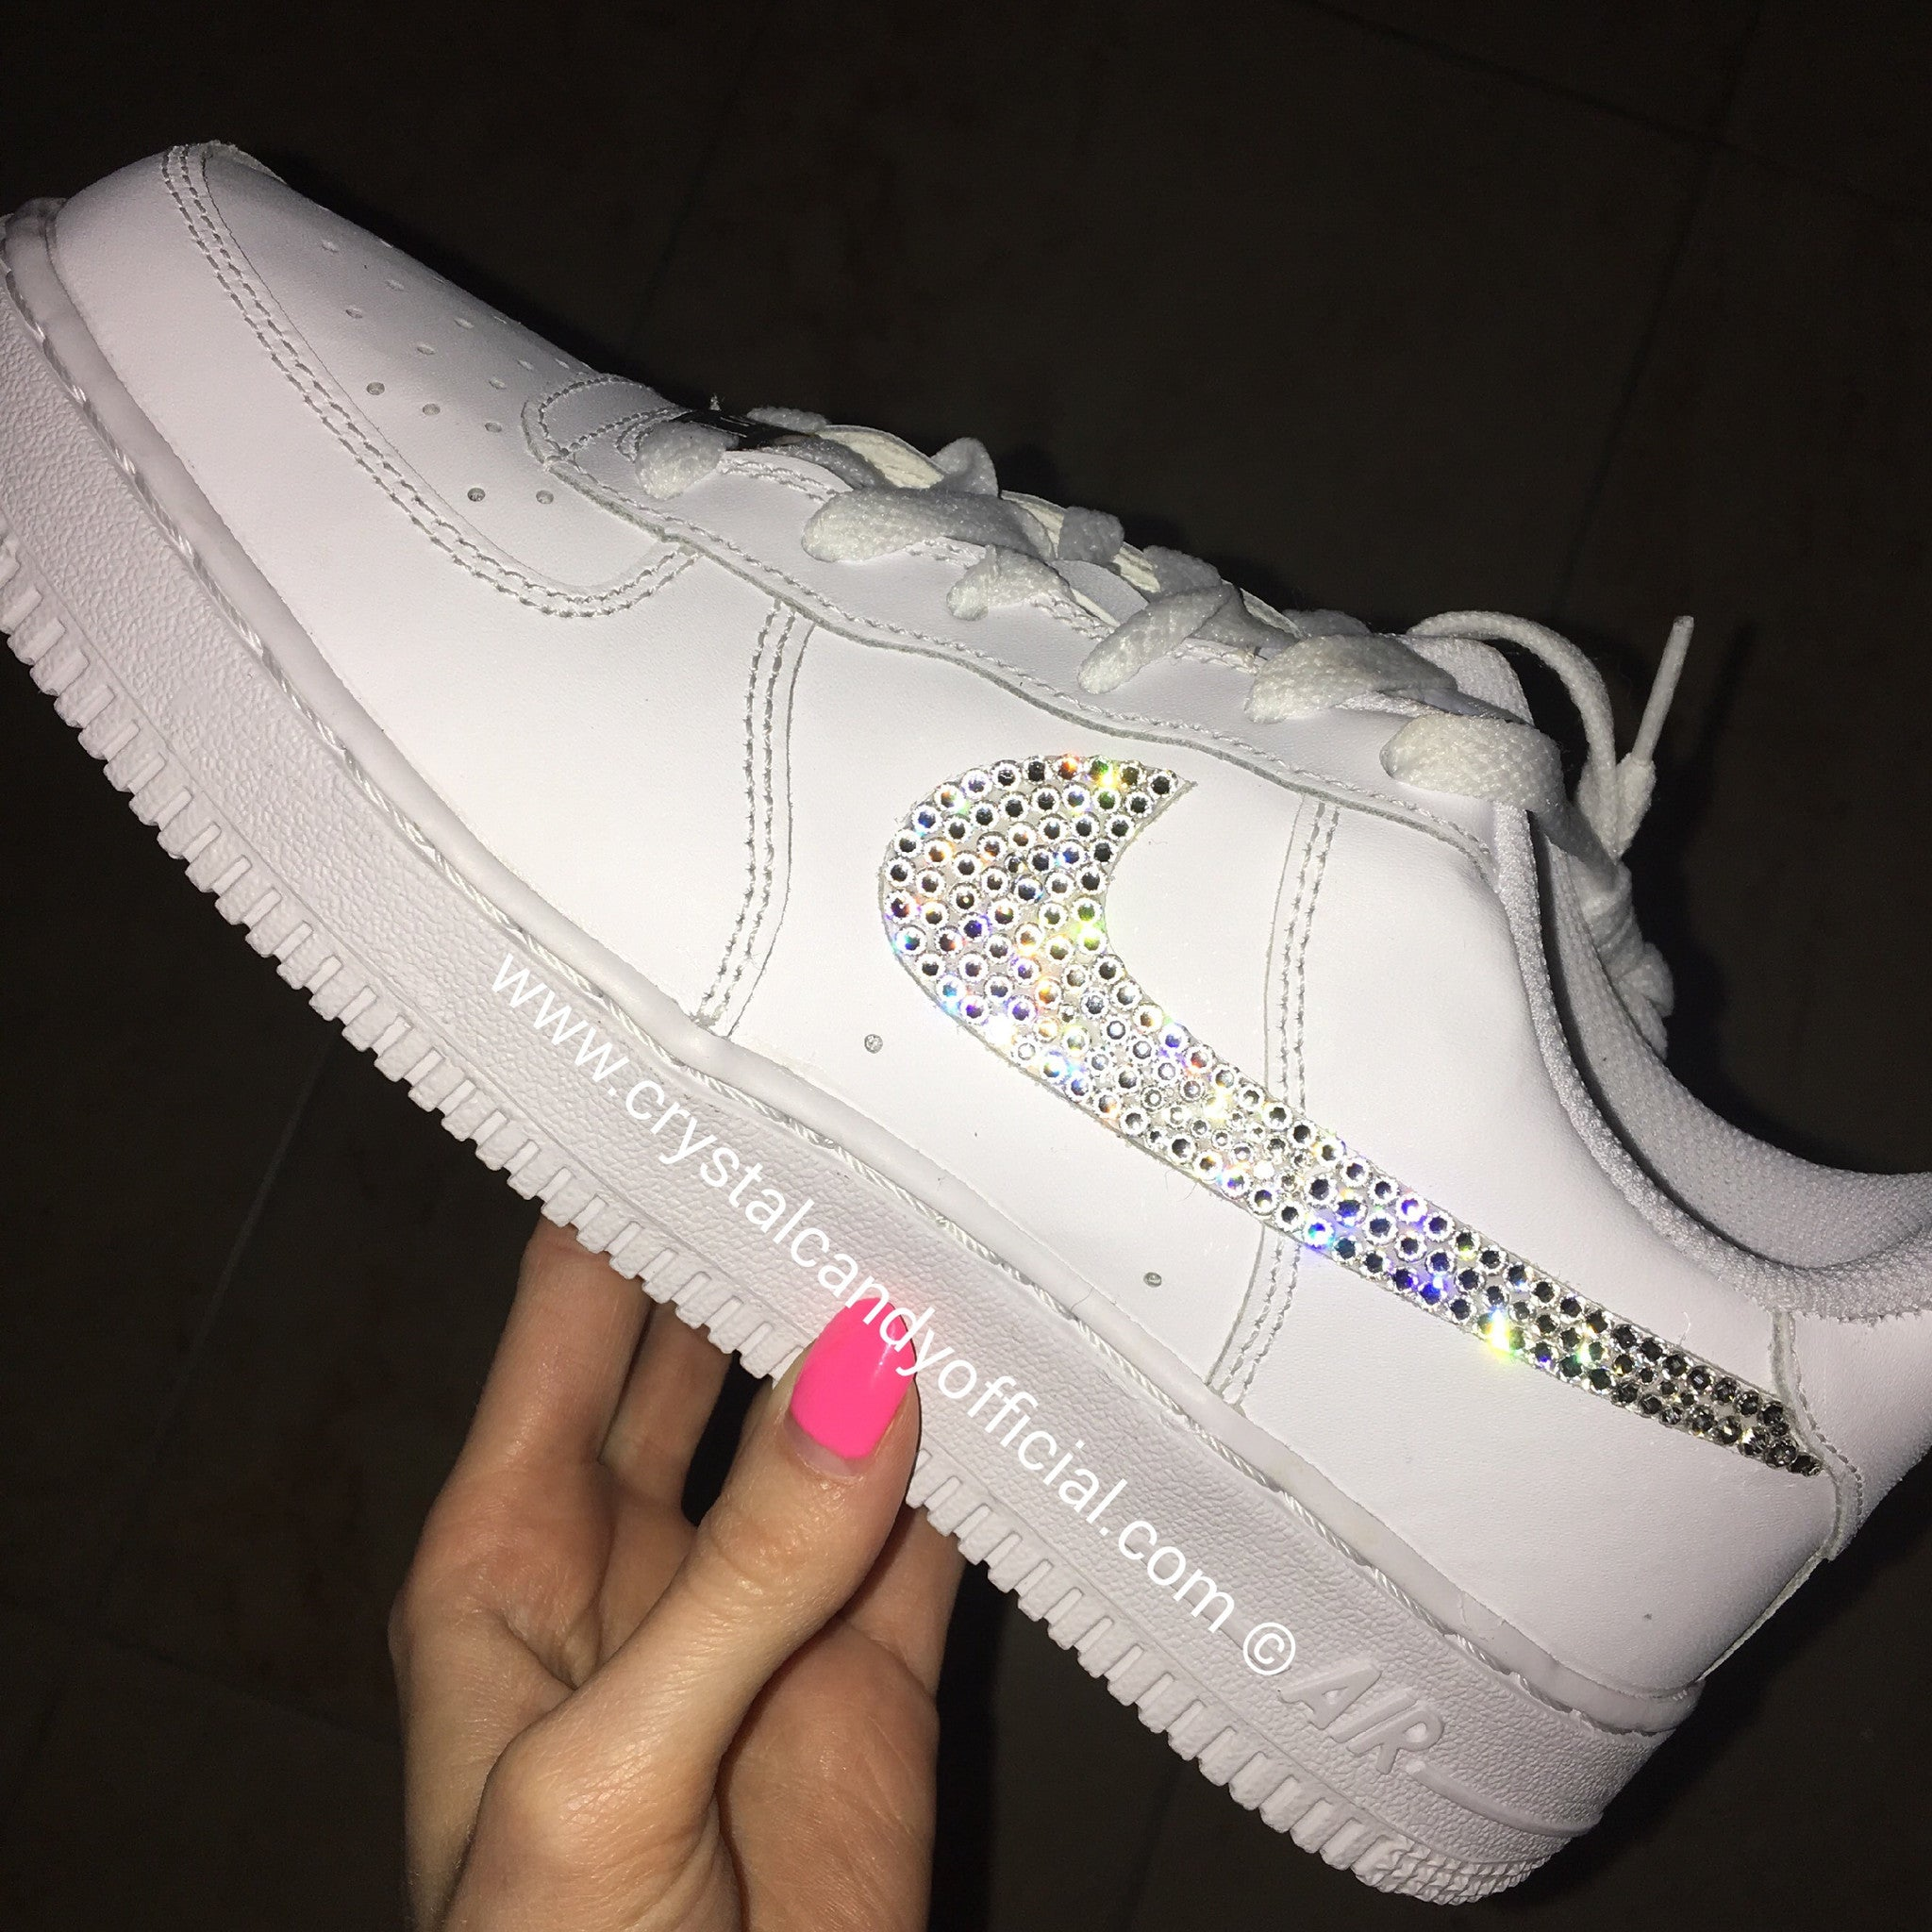 Crystal Nike Air Force 1 in White (Low) - Crystal Candy Limited 1d9b3c0bbeea